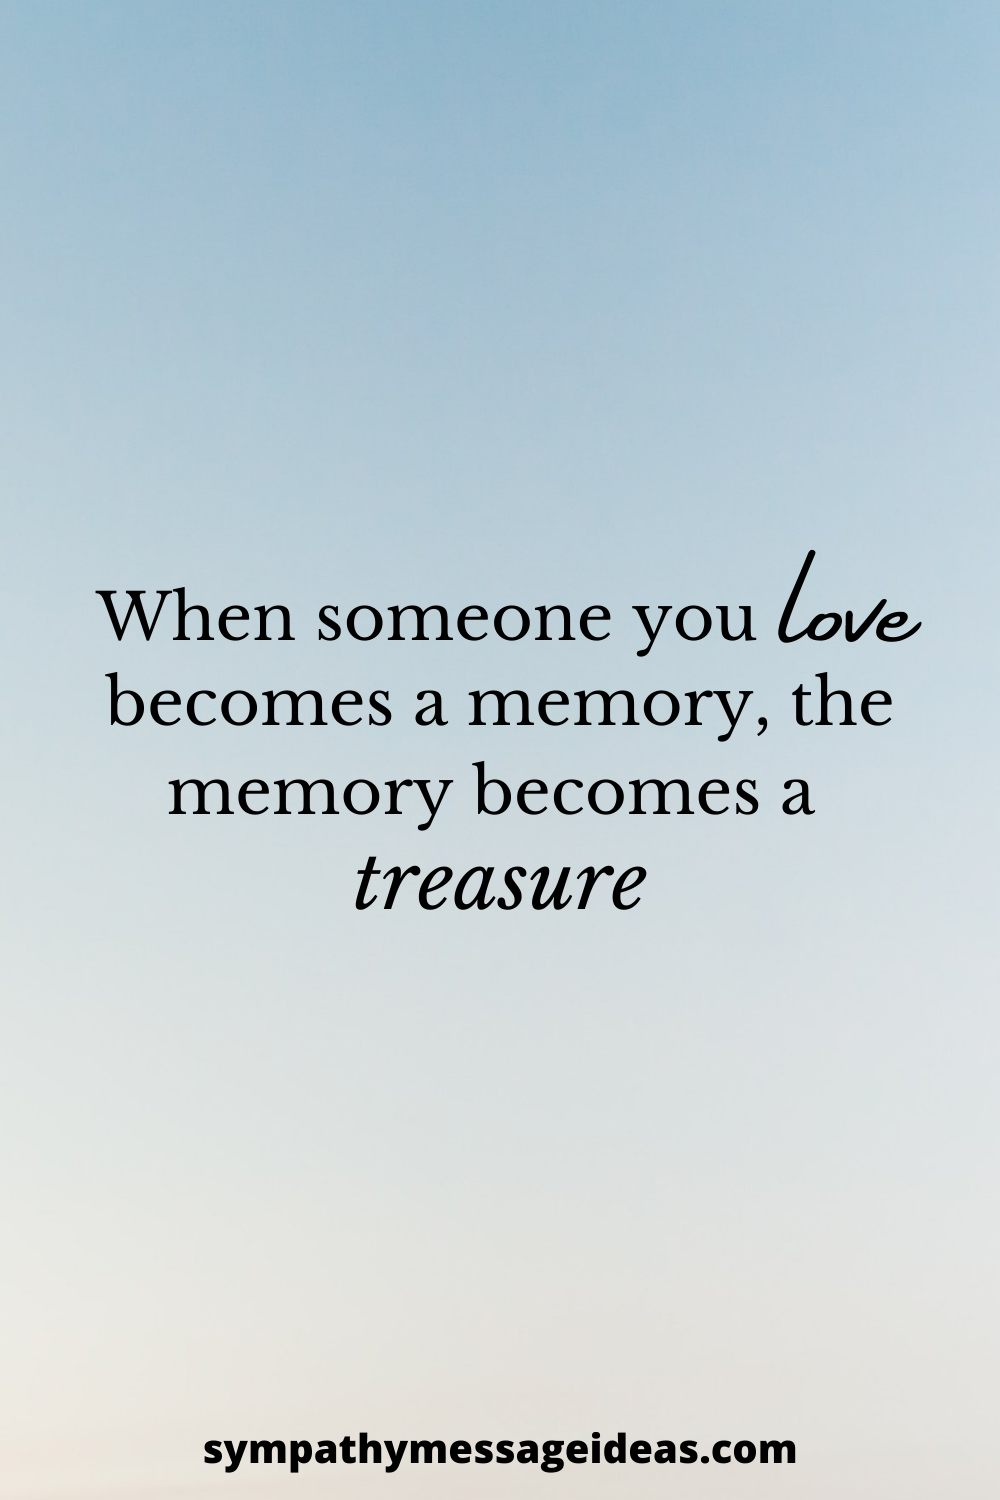 memory becomes a treasure quote